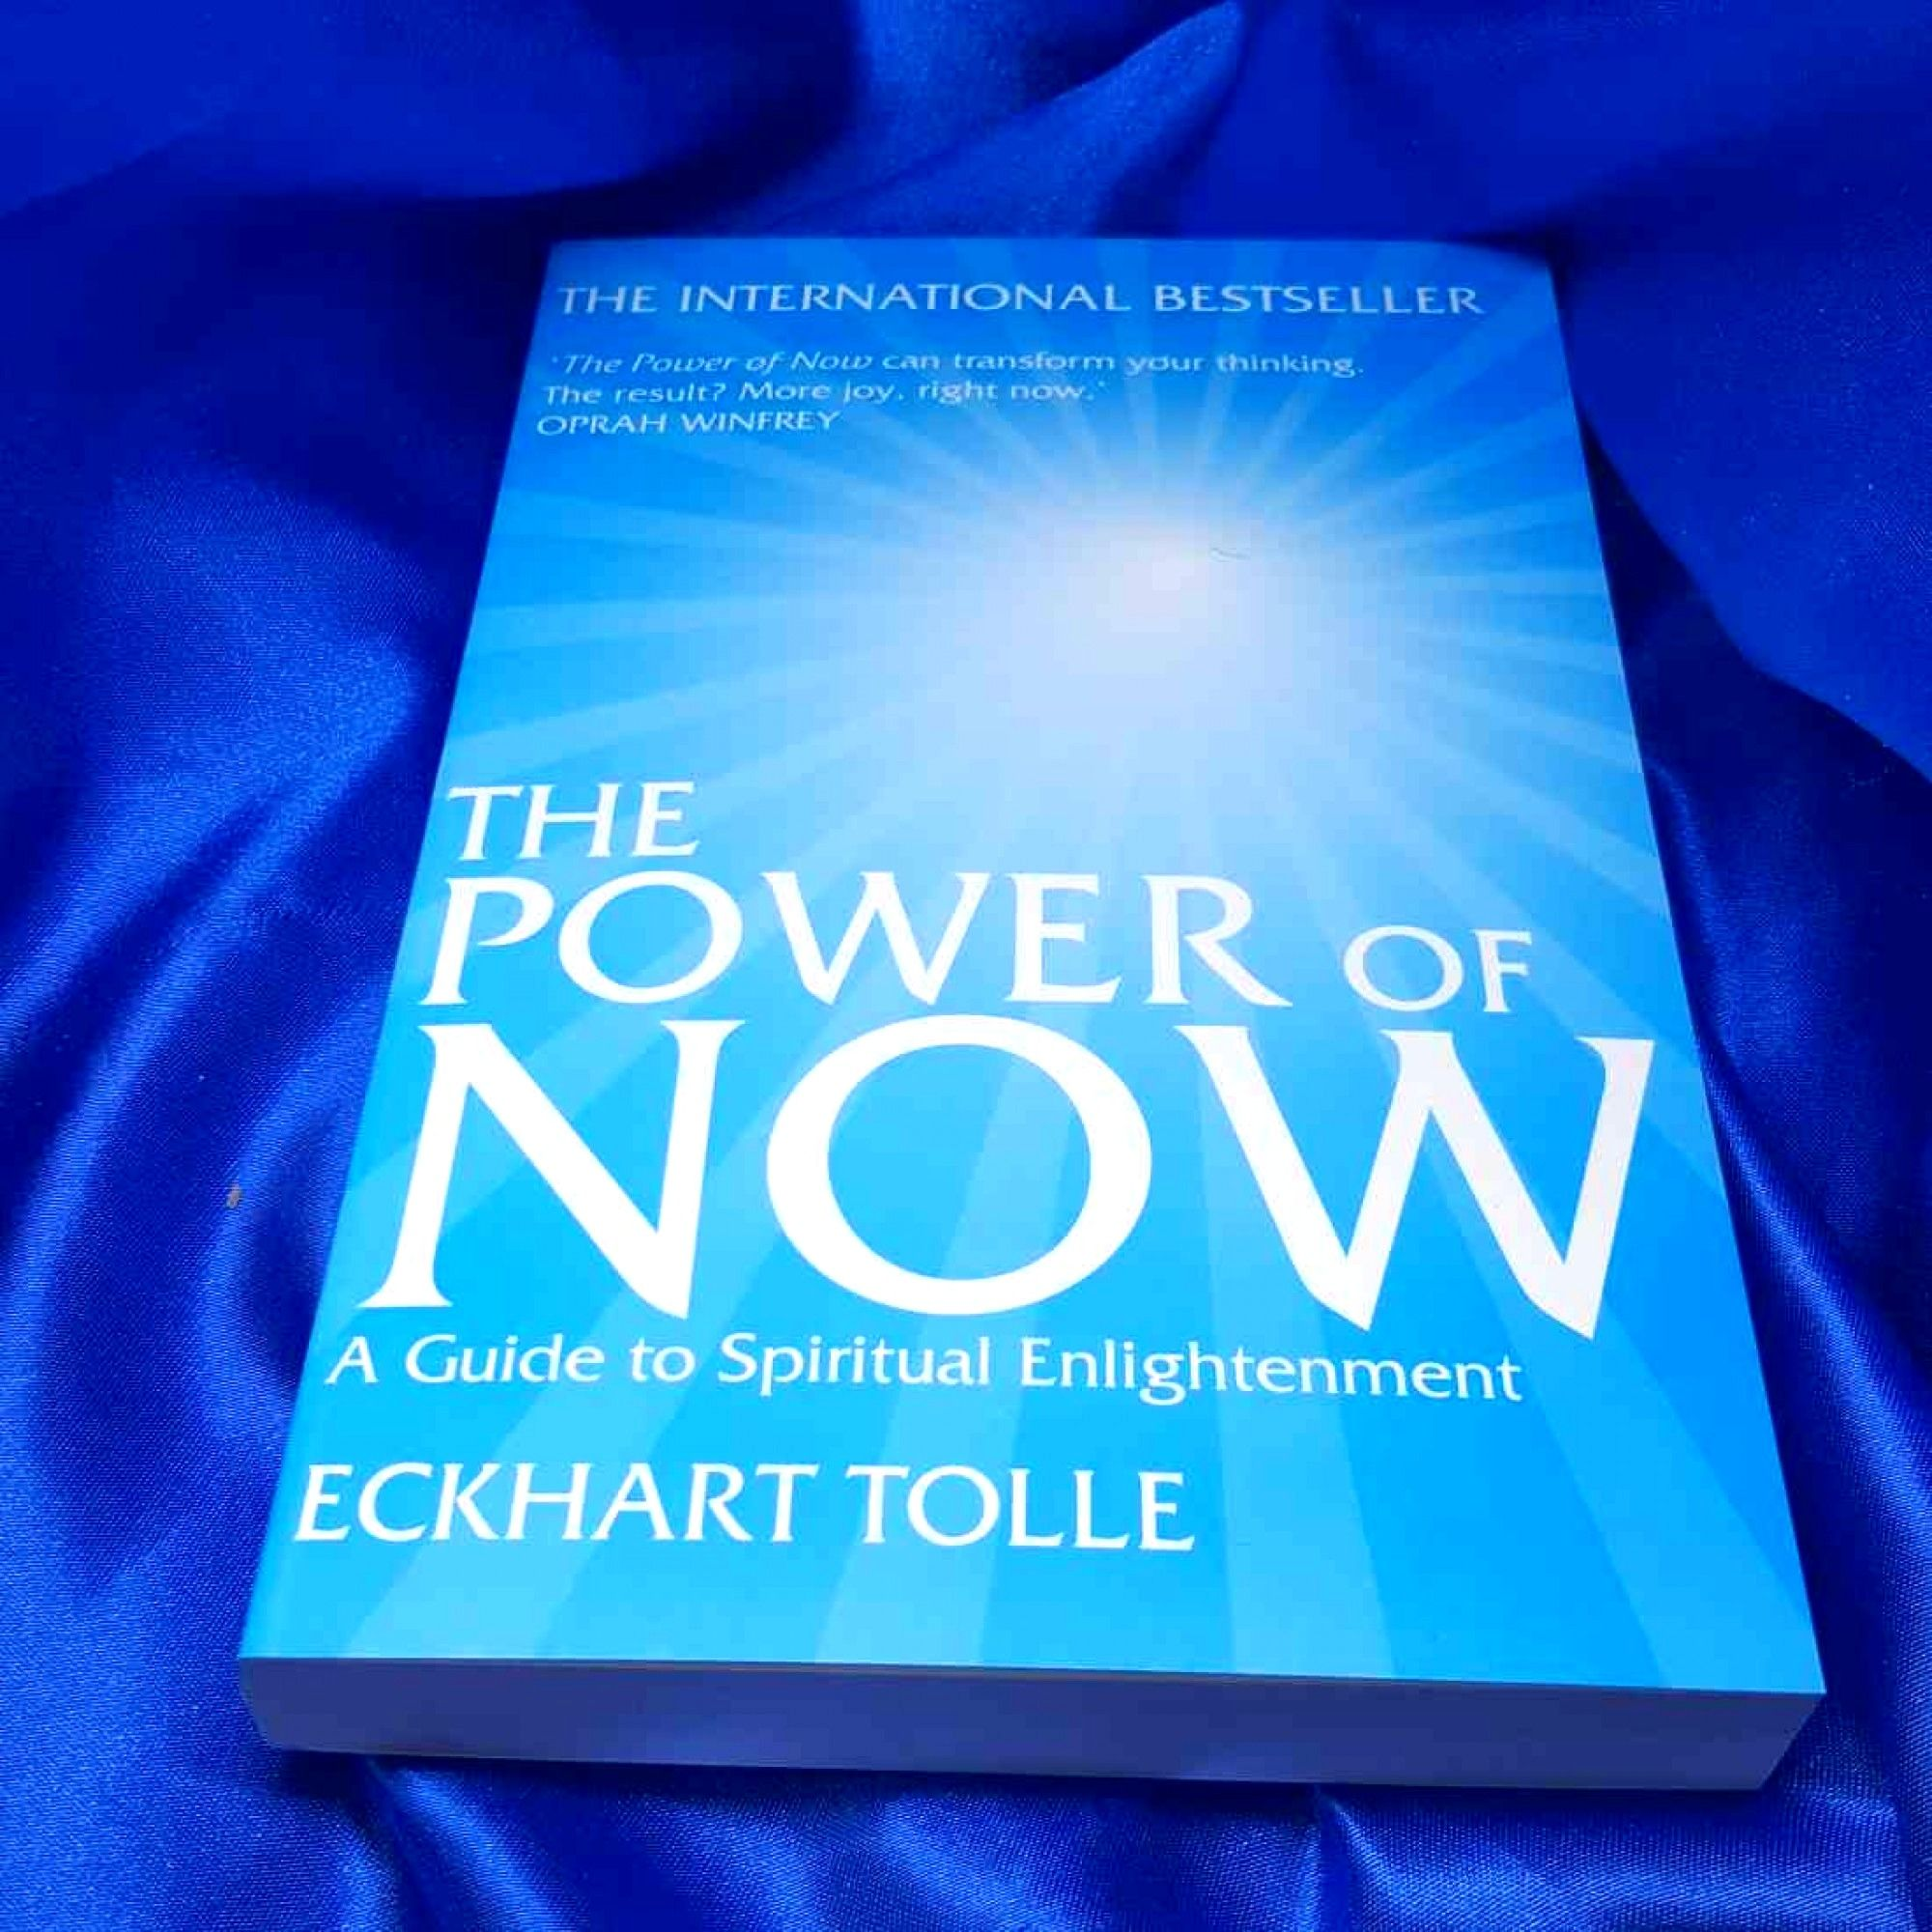 The Power of Now: by Eckhart Tolle (With images) | Best self help ...